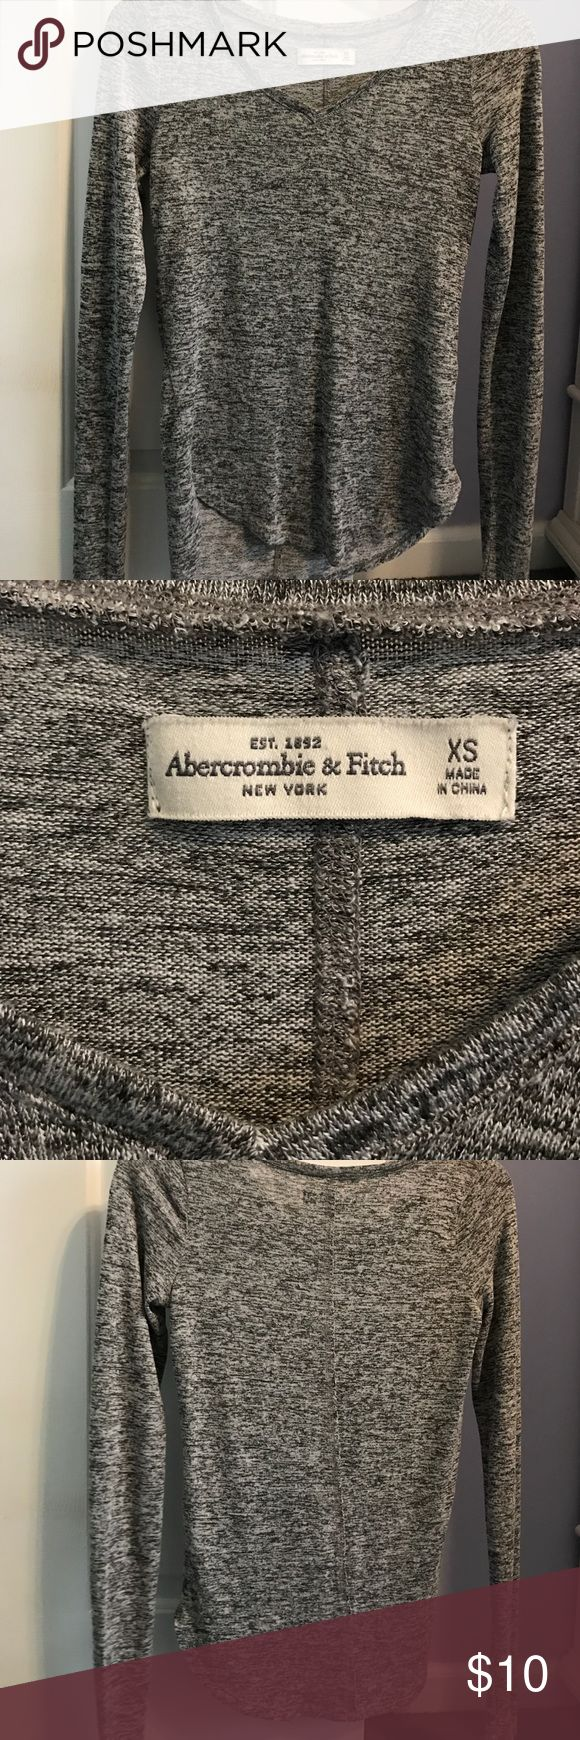 Abercrombie and fitch top Abercrombie and fitch heather grey top. V neck, fitted around chest area and arms, lose and flowing towards bottom. Xsmall size. Never worn, but no longer has tags. Abercrombie & Fitch Tops Tees - Long Sleeve